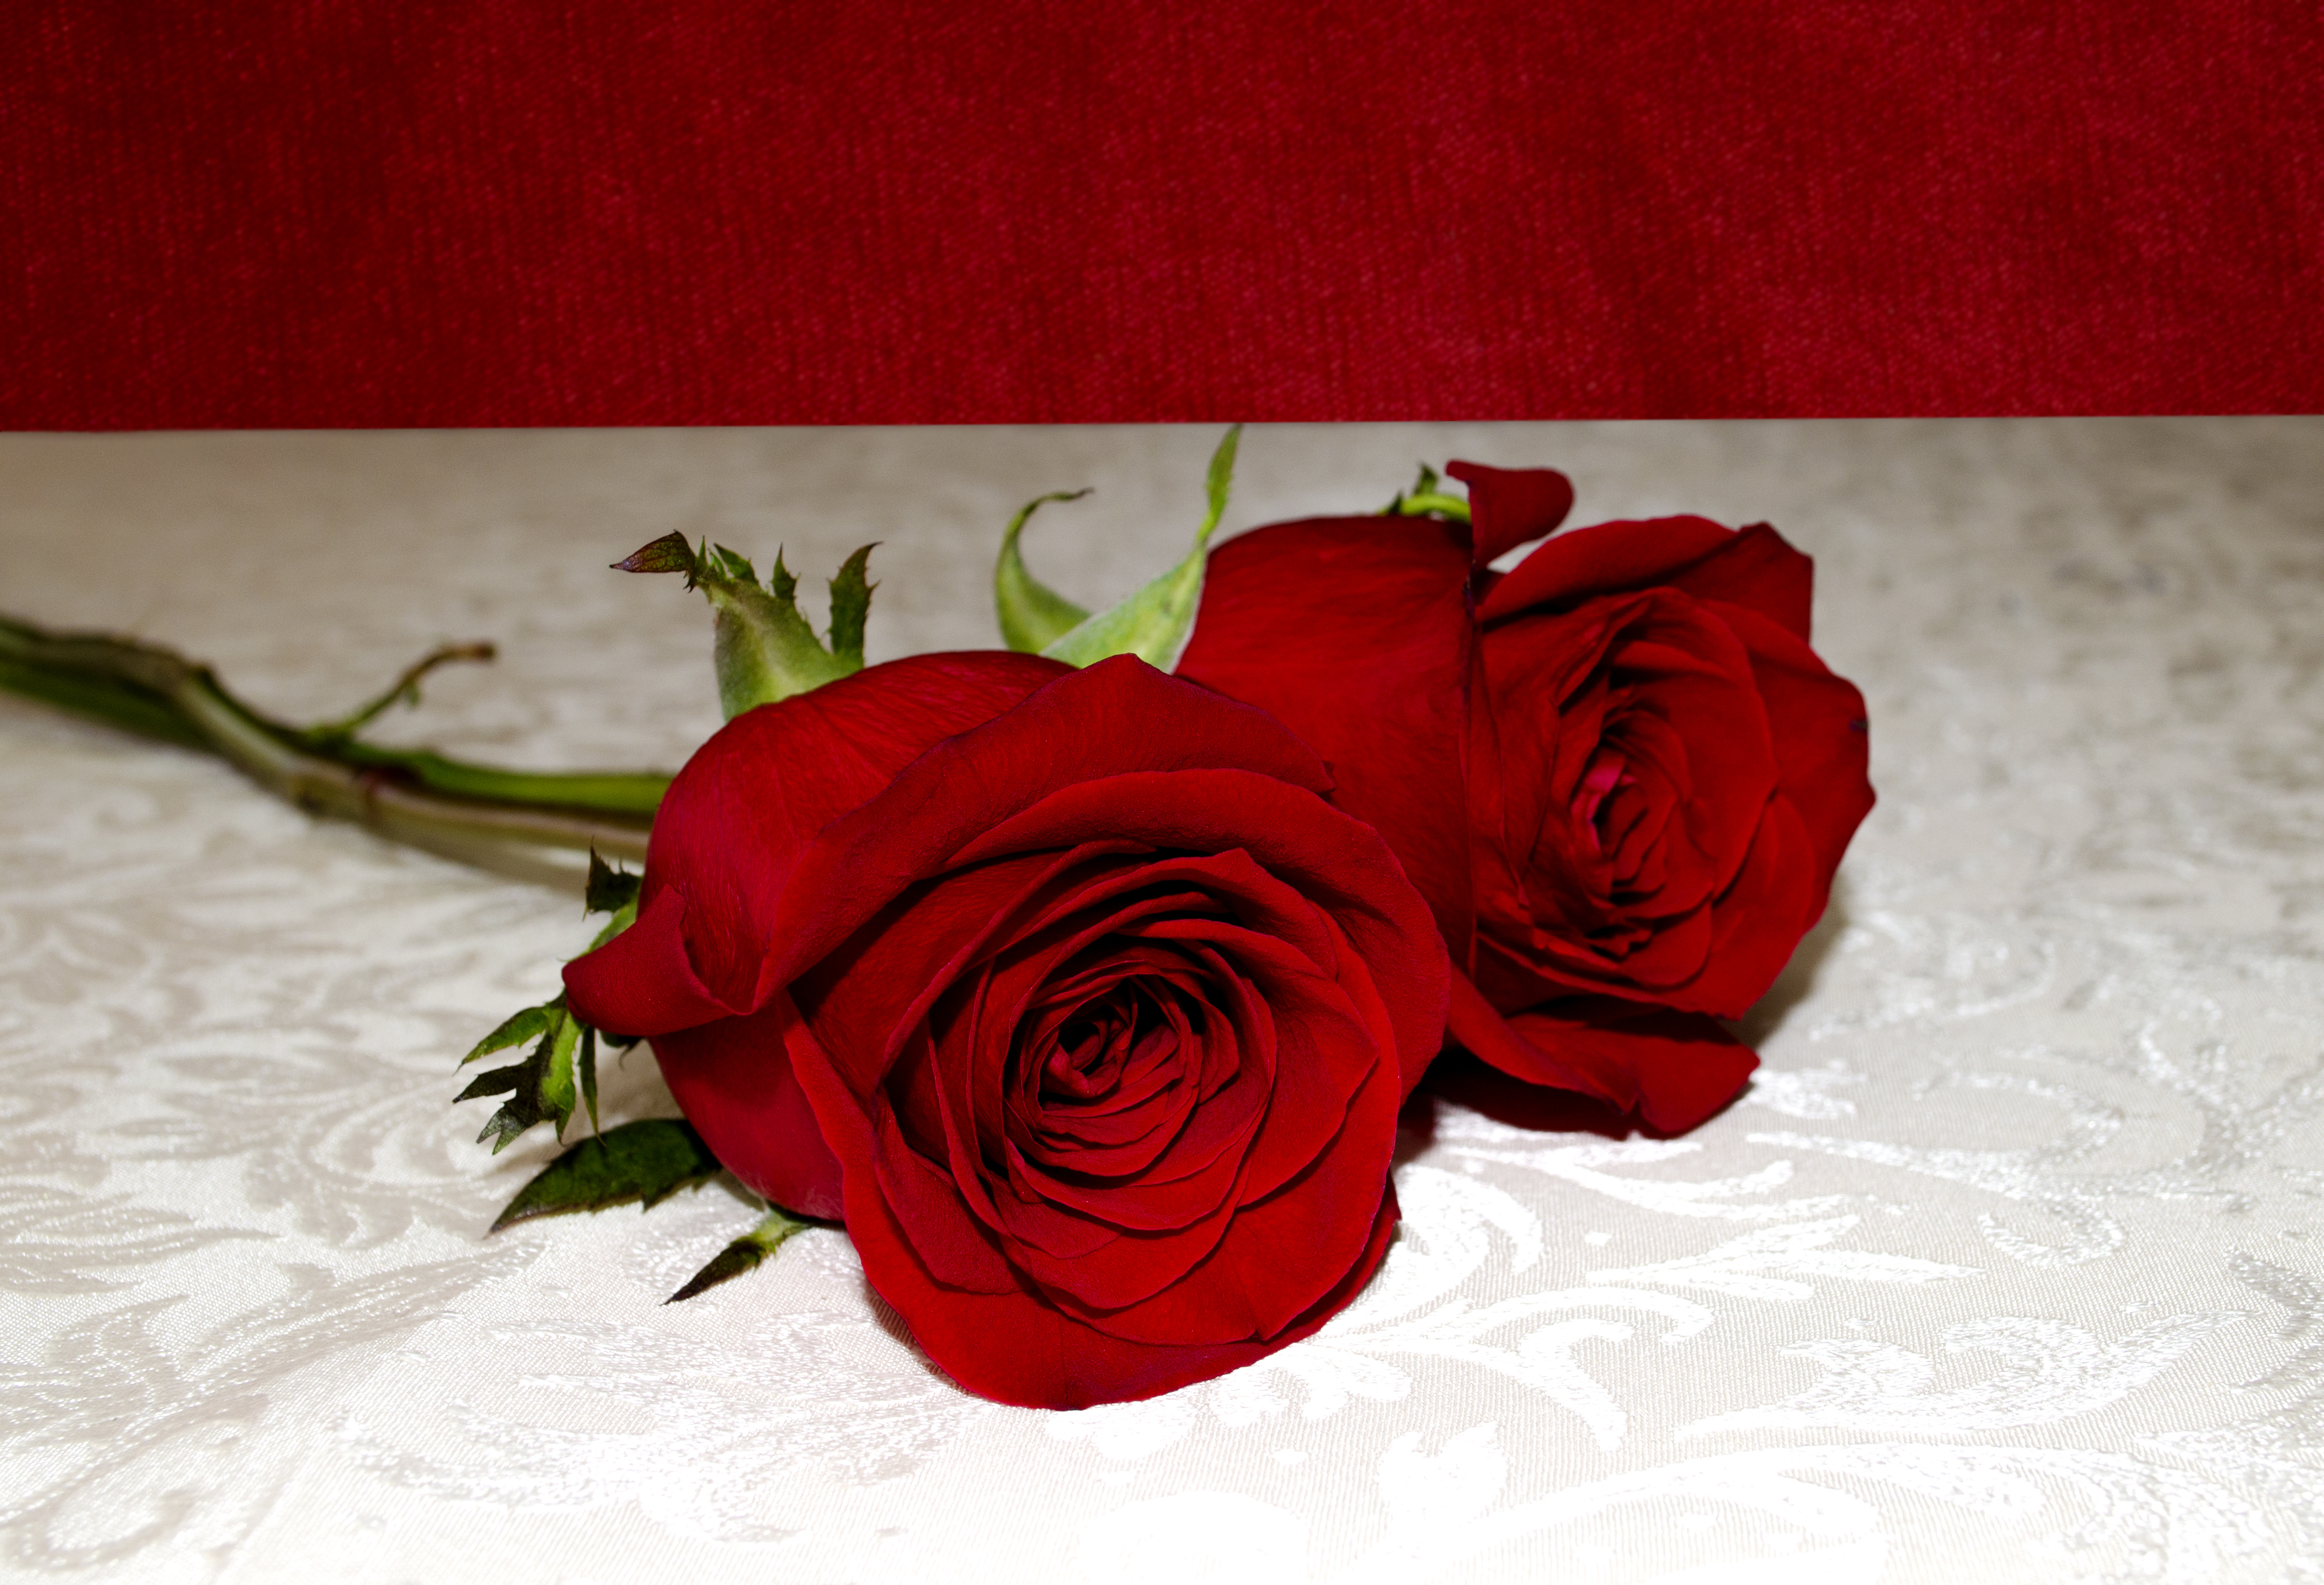 Two red roses on a white surface photo